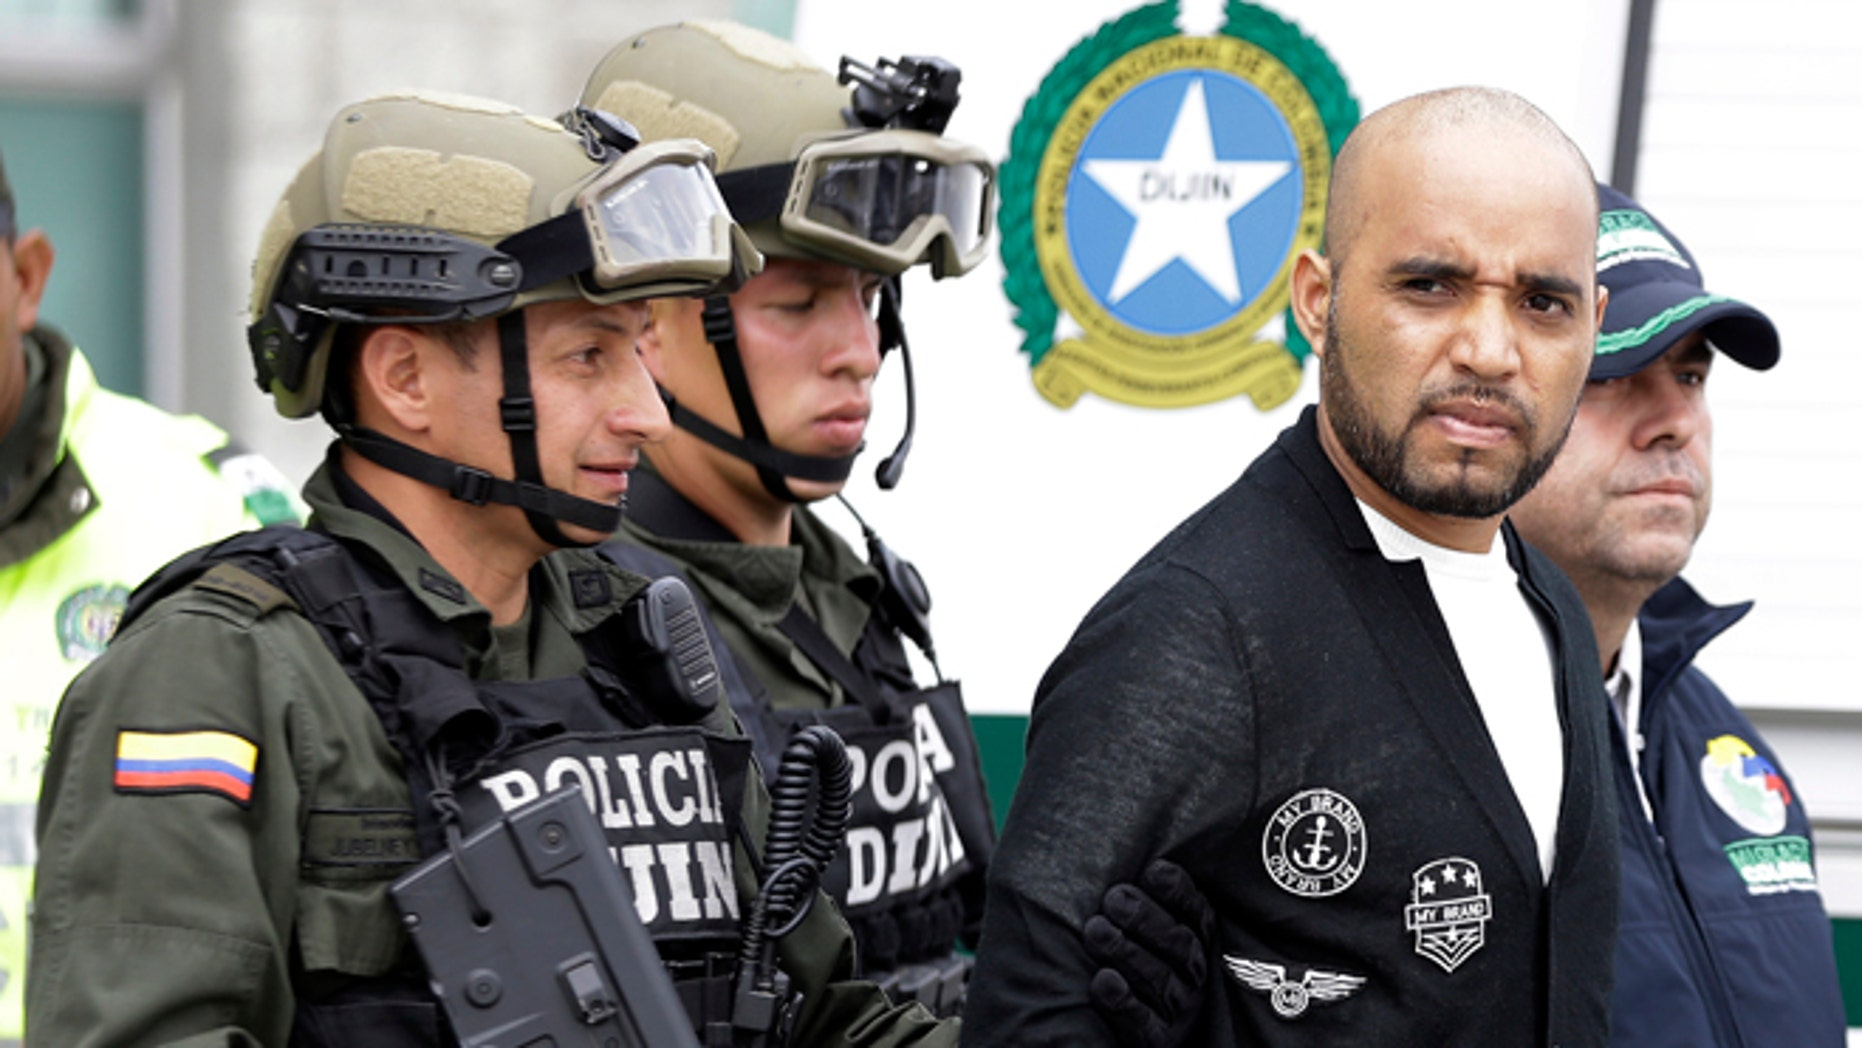 Alleged Peruvian drug trafficker Gerson Galvez, right, is escorted by police officers to a waiting Peruvian Air Force plane, in Bogota, Colombia, Sunday, May 1, 2016. Galvez who is one of Peru's most wanted criminals was captured by the Colombian police in Medellín on Saturday and was handed over to the Peruvian authorities. (AP Photo/Fernando Vergara)